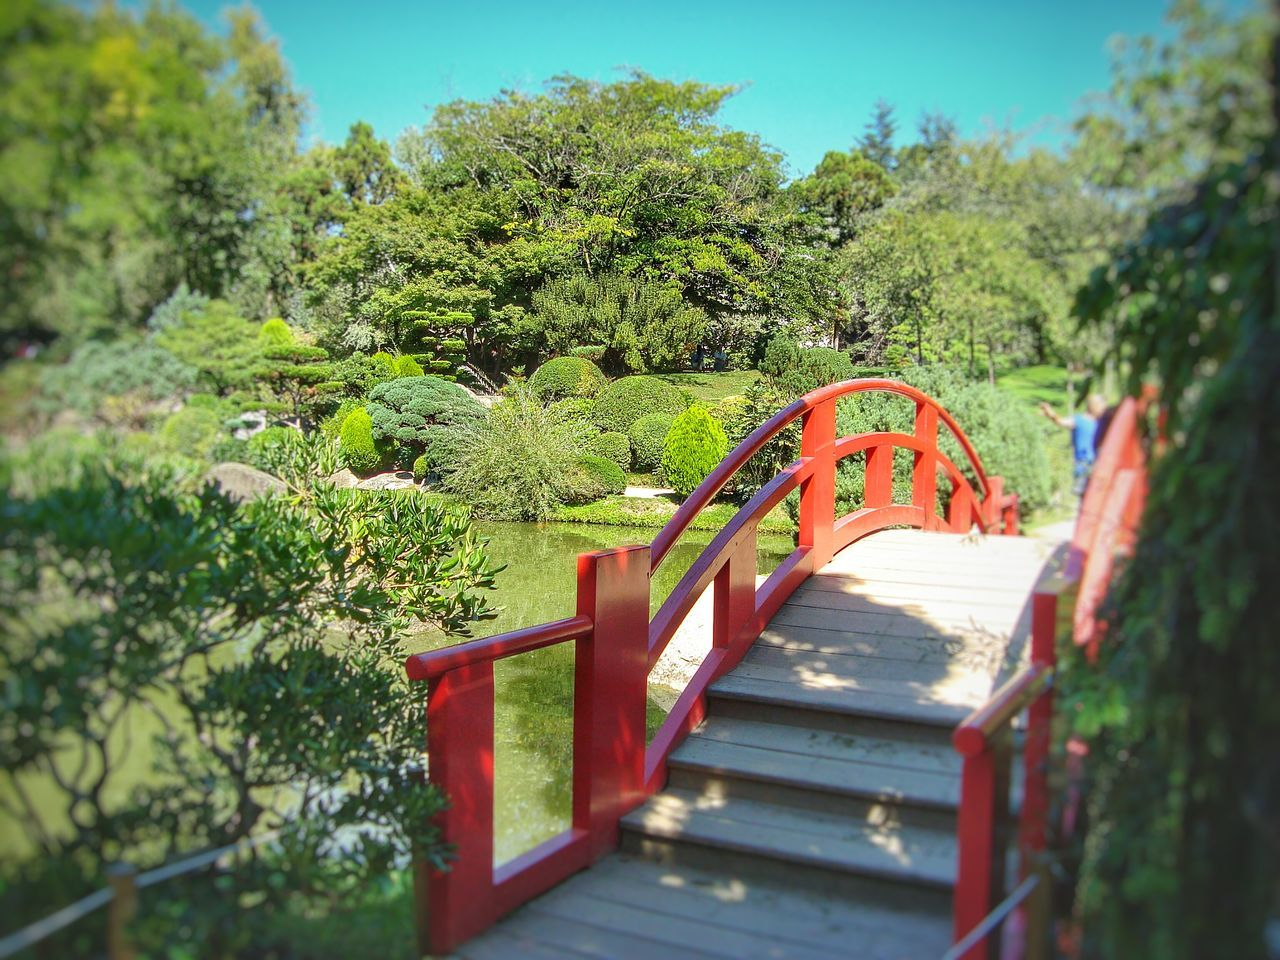 Perfect place for walking and relaxation. Beautiful Landscape Depth Of Field Eye4photography  EyeEm Best Shots EyeEm Nature Lover Flowers,Plants & Garden Garden Photography Japanese  Japanese Bridge Natural Harmony Nature Photography Park Peaceful And Quiet Selective Focus Steps